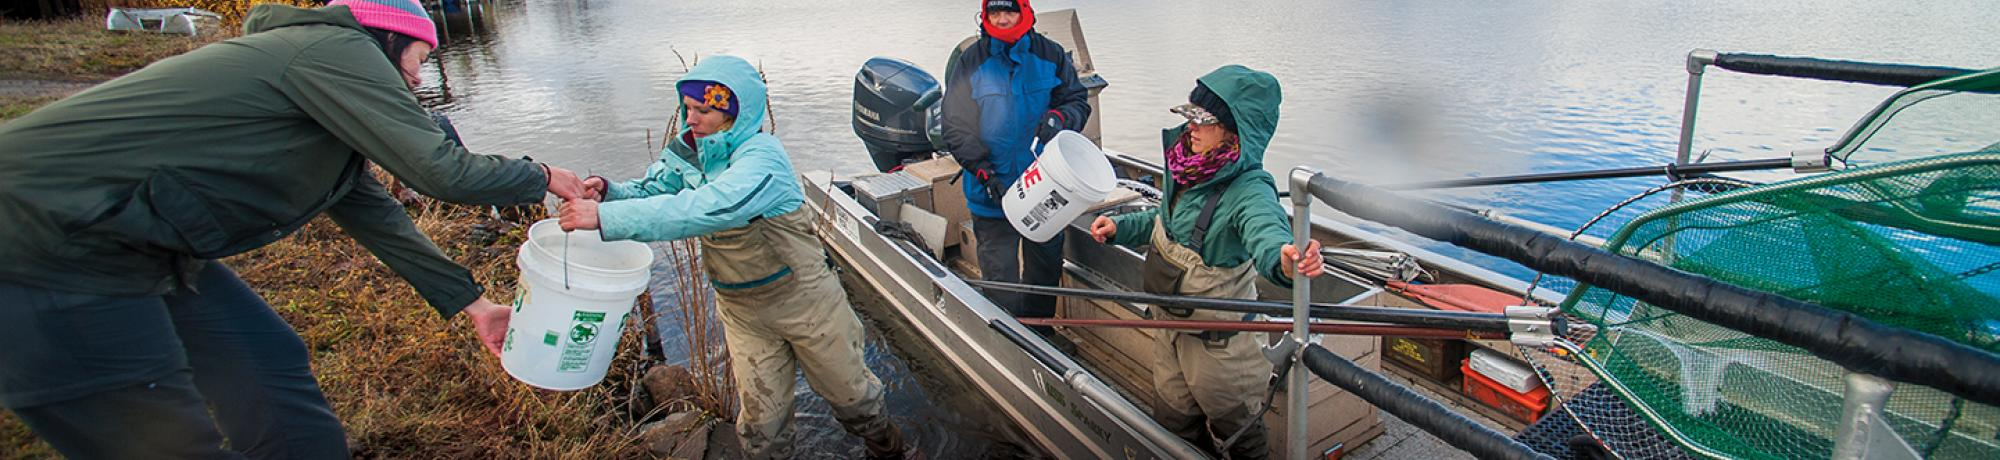 Faculty and students working together at the Fall River fish tagging event. (Photo by Val Atkinson)